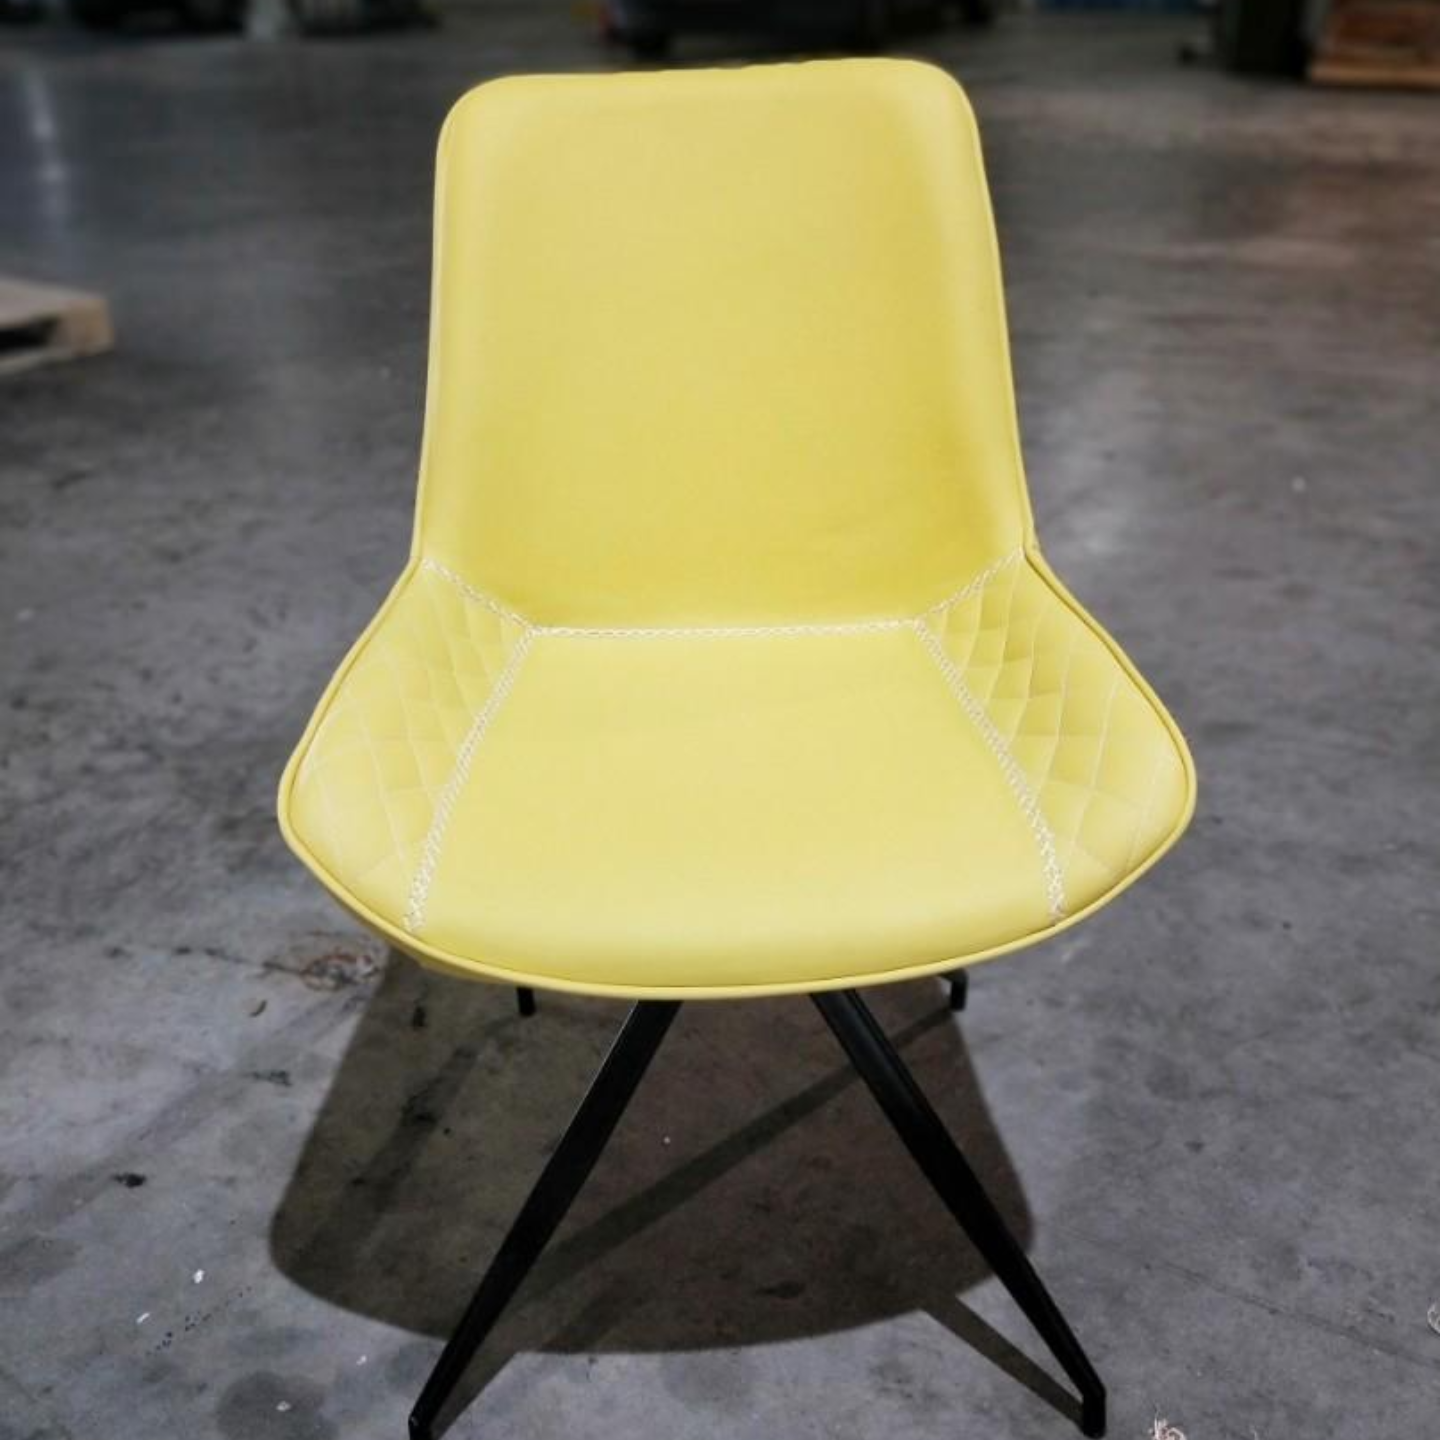 DARWIN Designer Chair